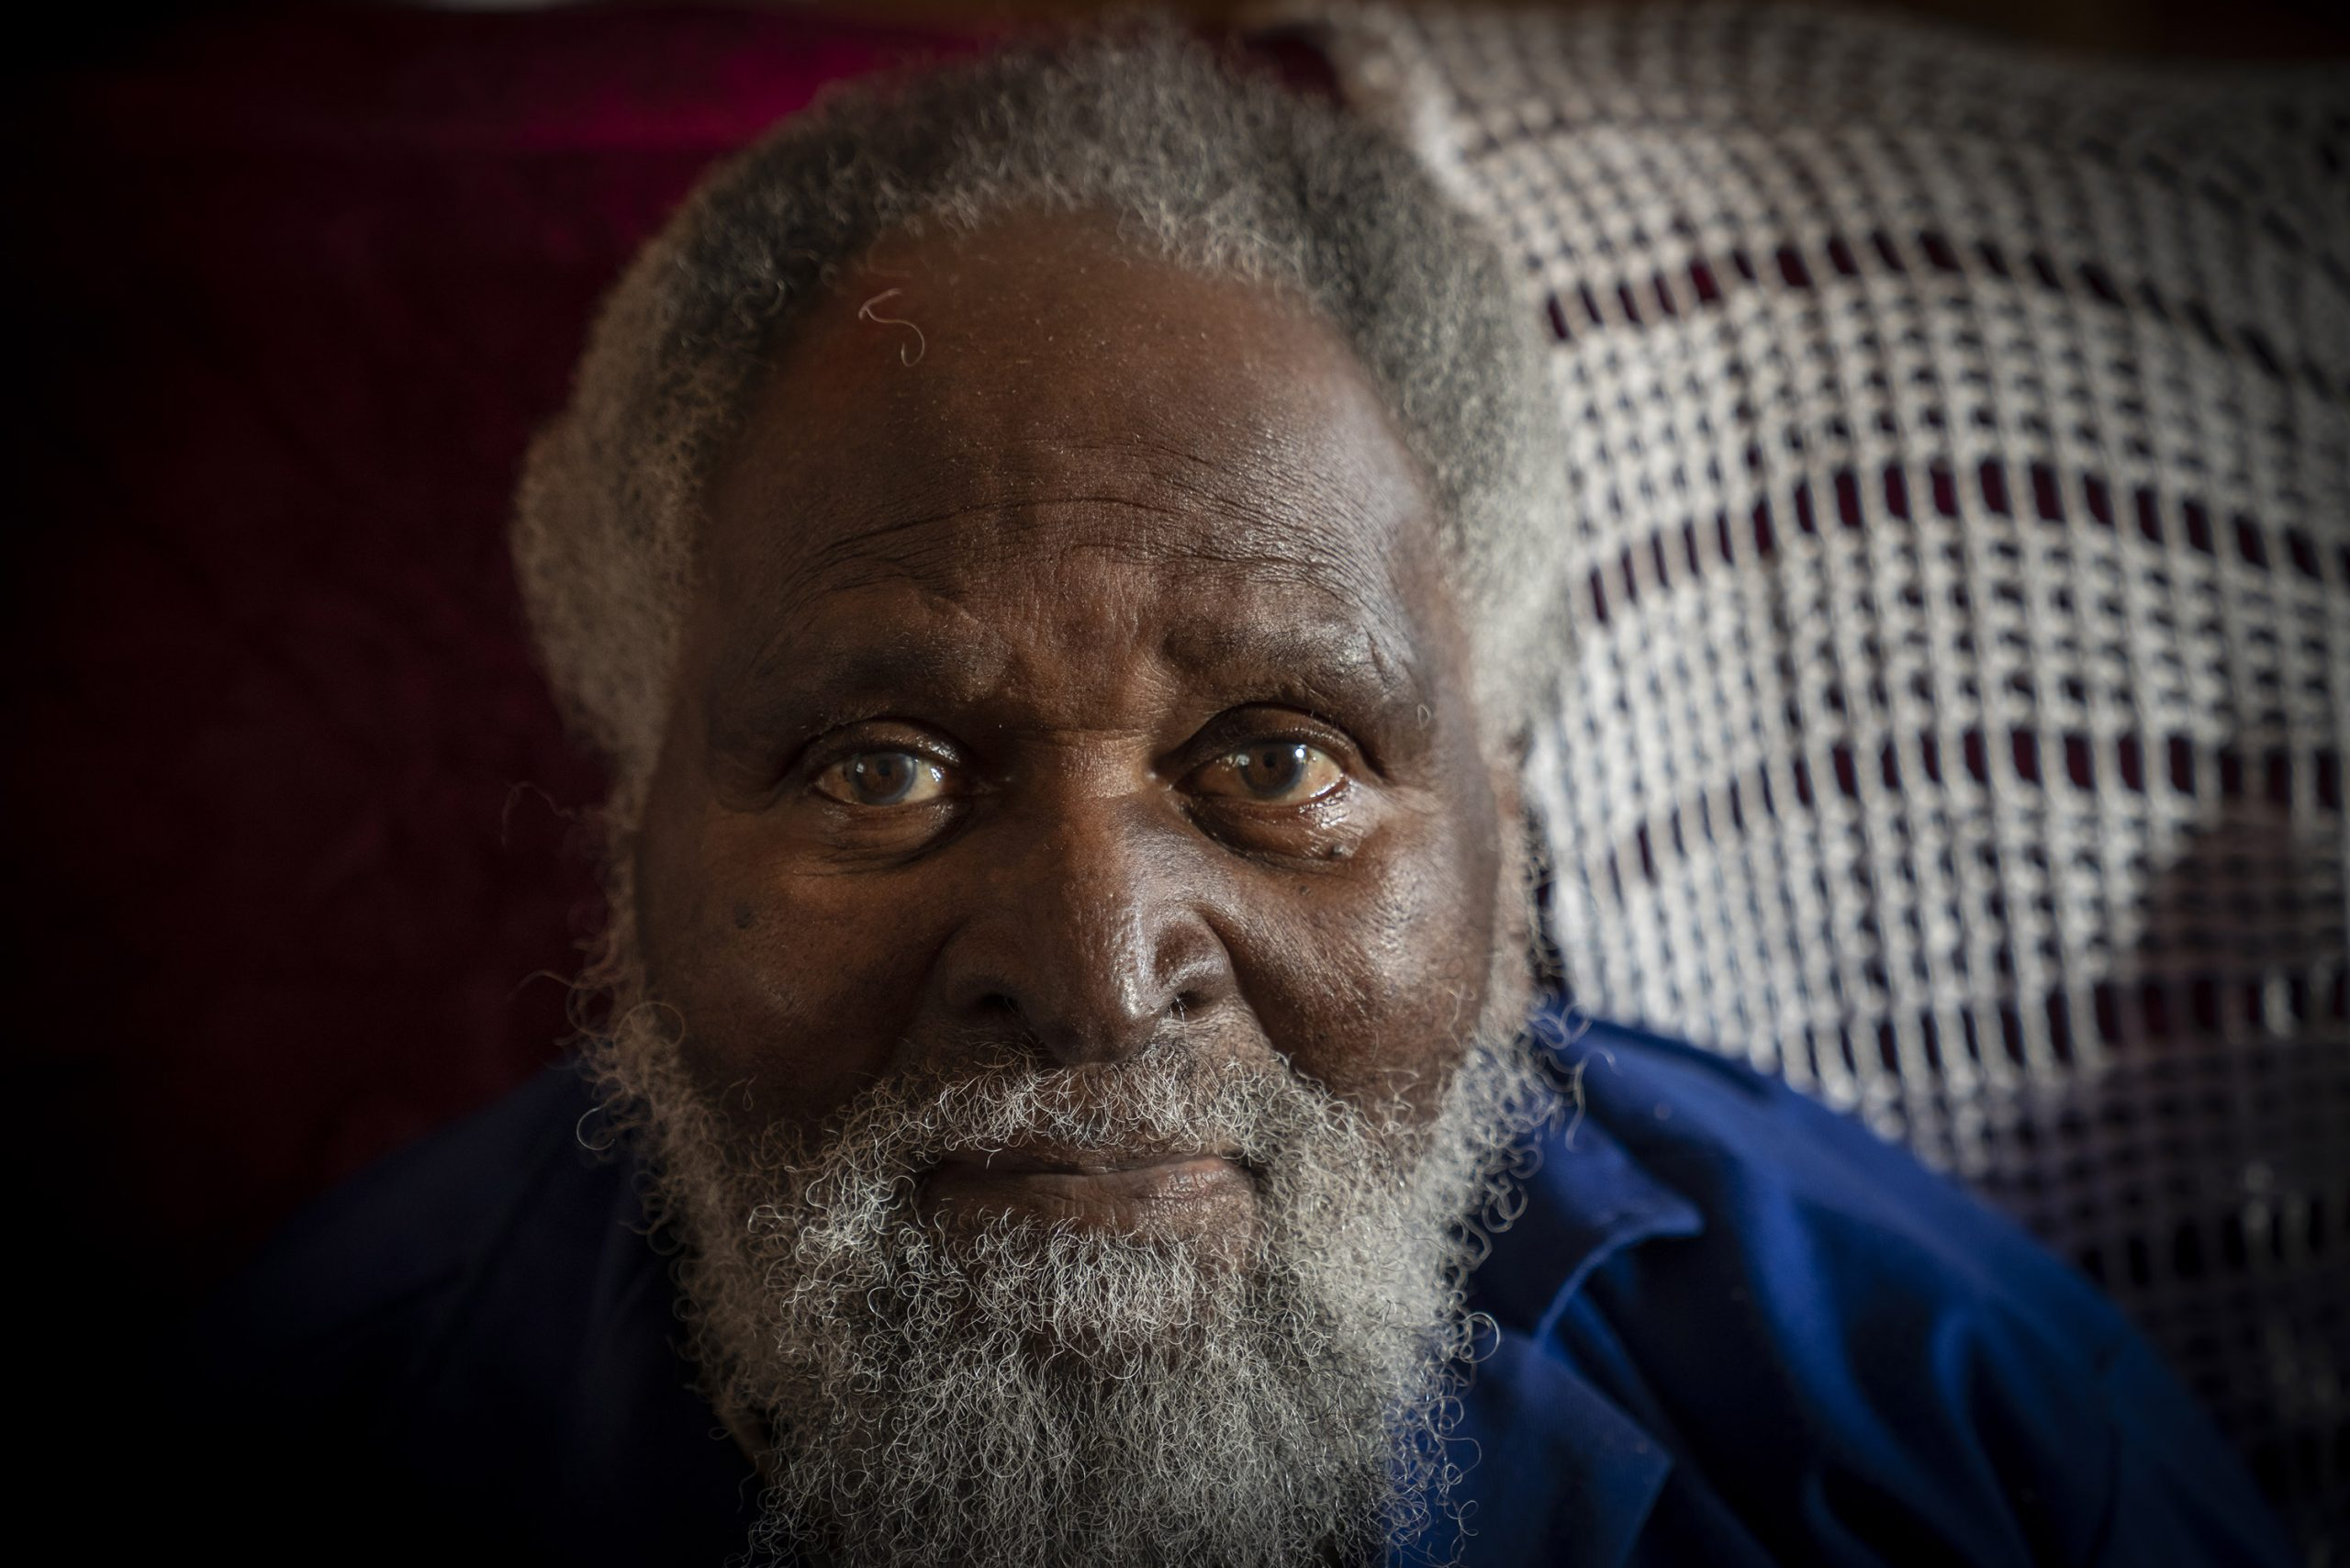 1 July 2019: Mongezi Madinda is in his 90s. The 1820 settlers forced his grandfather off his land to build the Salem Academy.